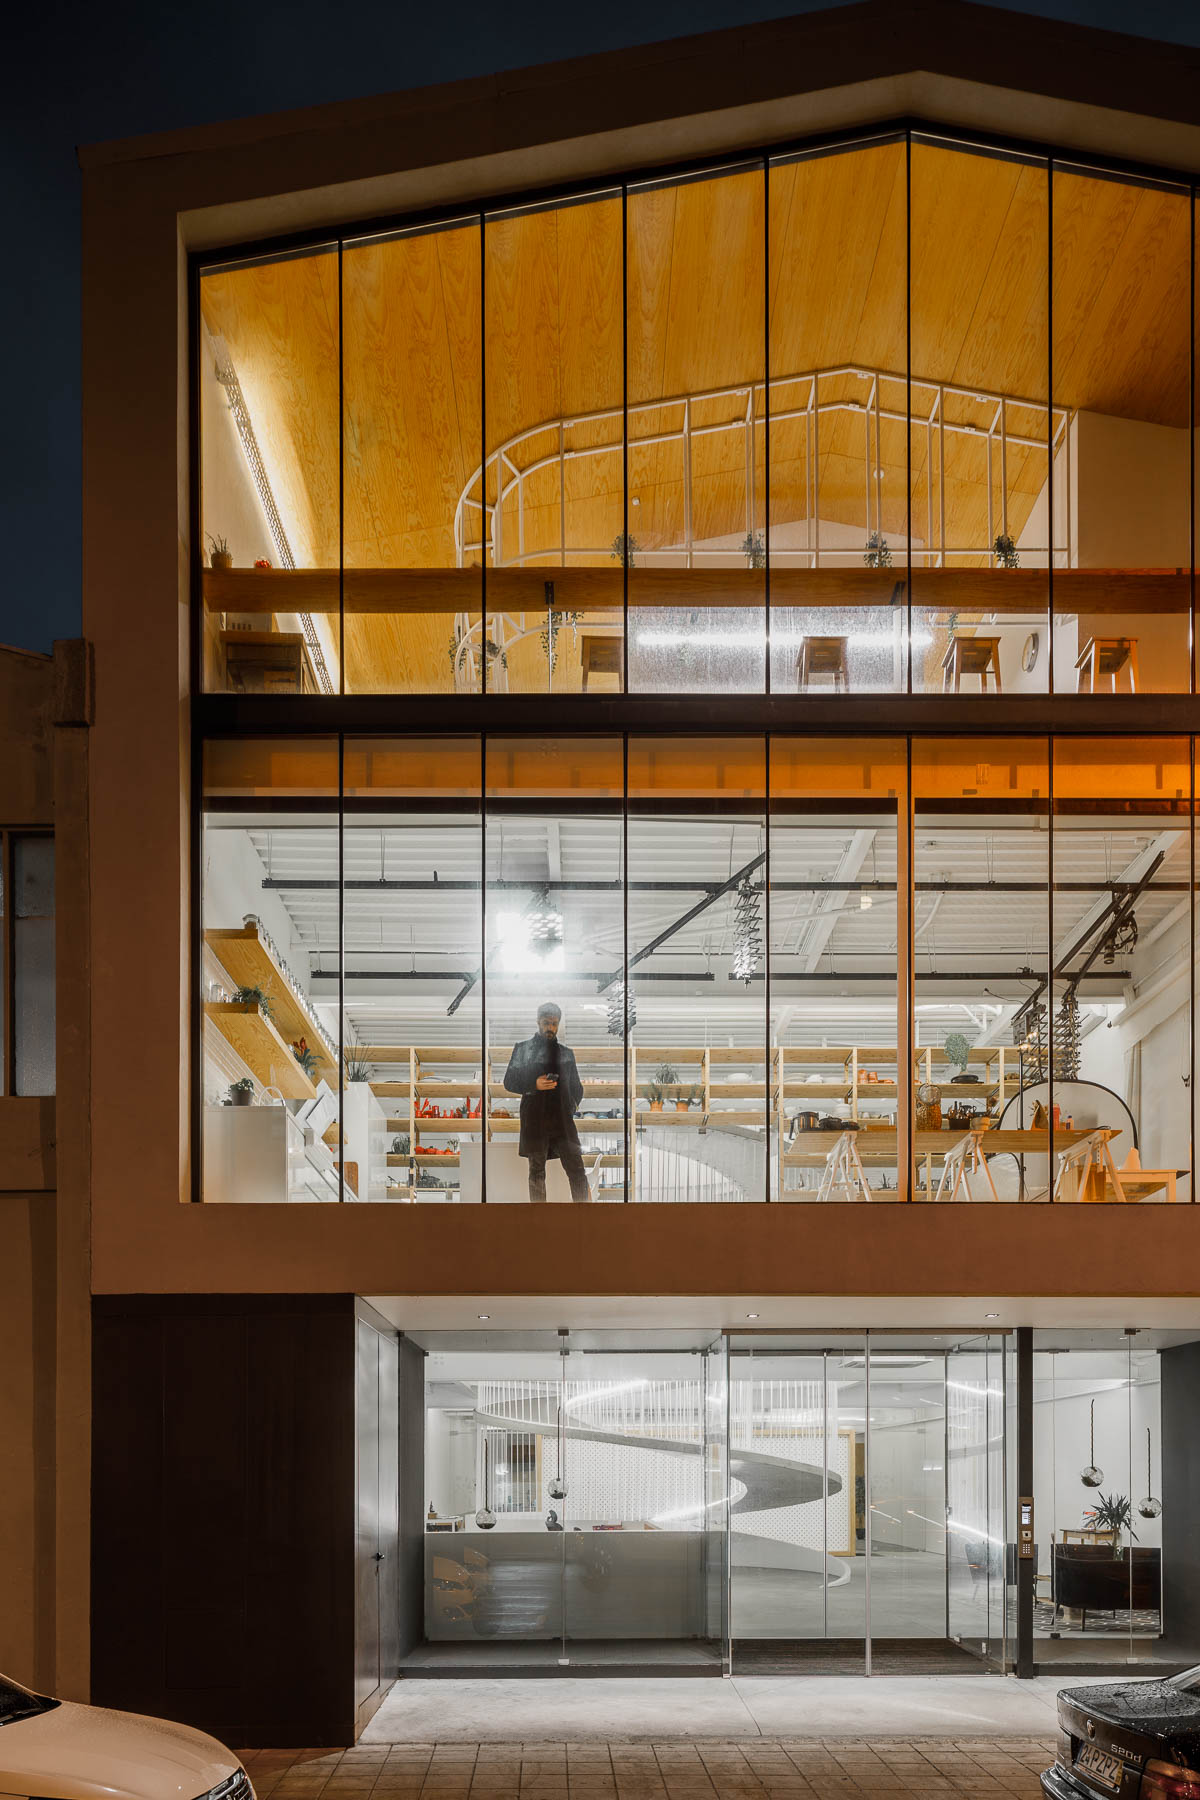 The exterior of this modern office has walls of glass providing a glimpse of the interior for the pedestrians on the street.